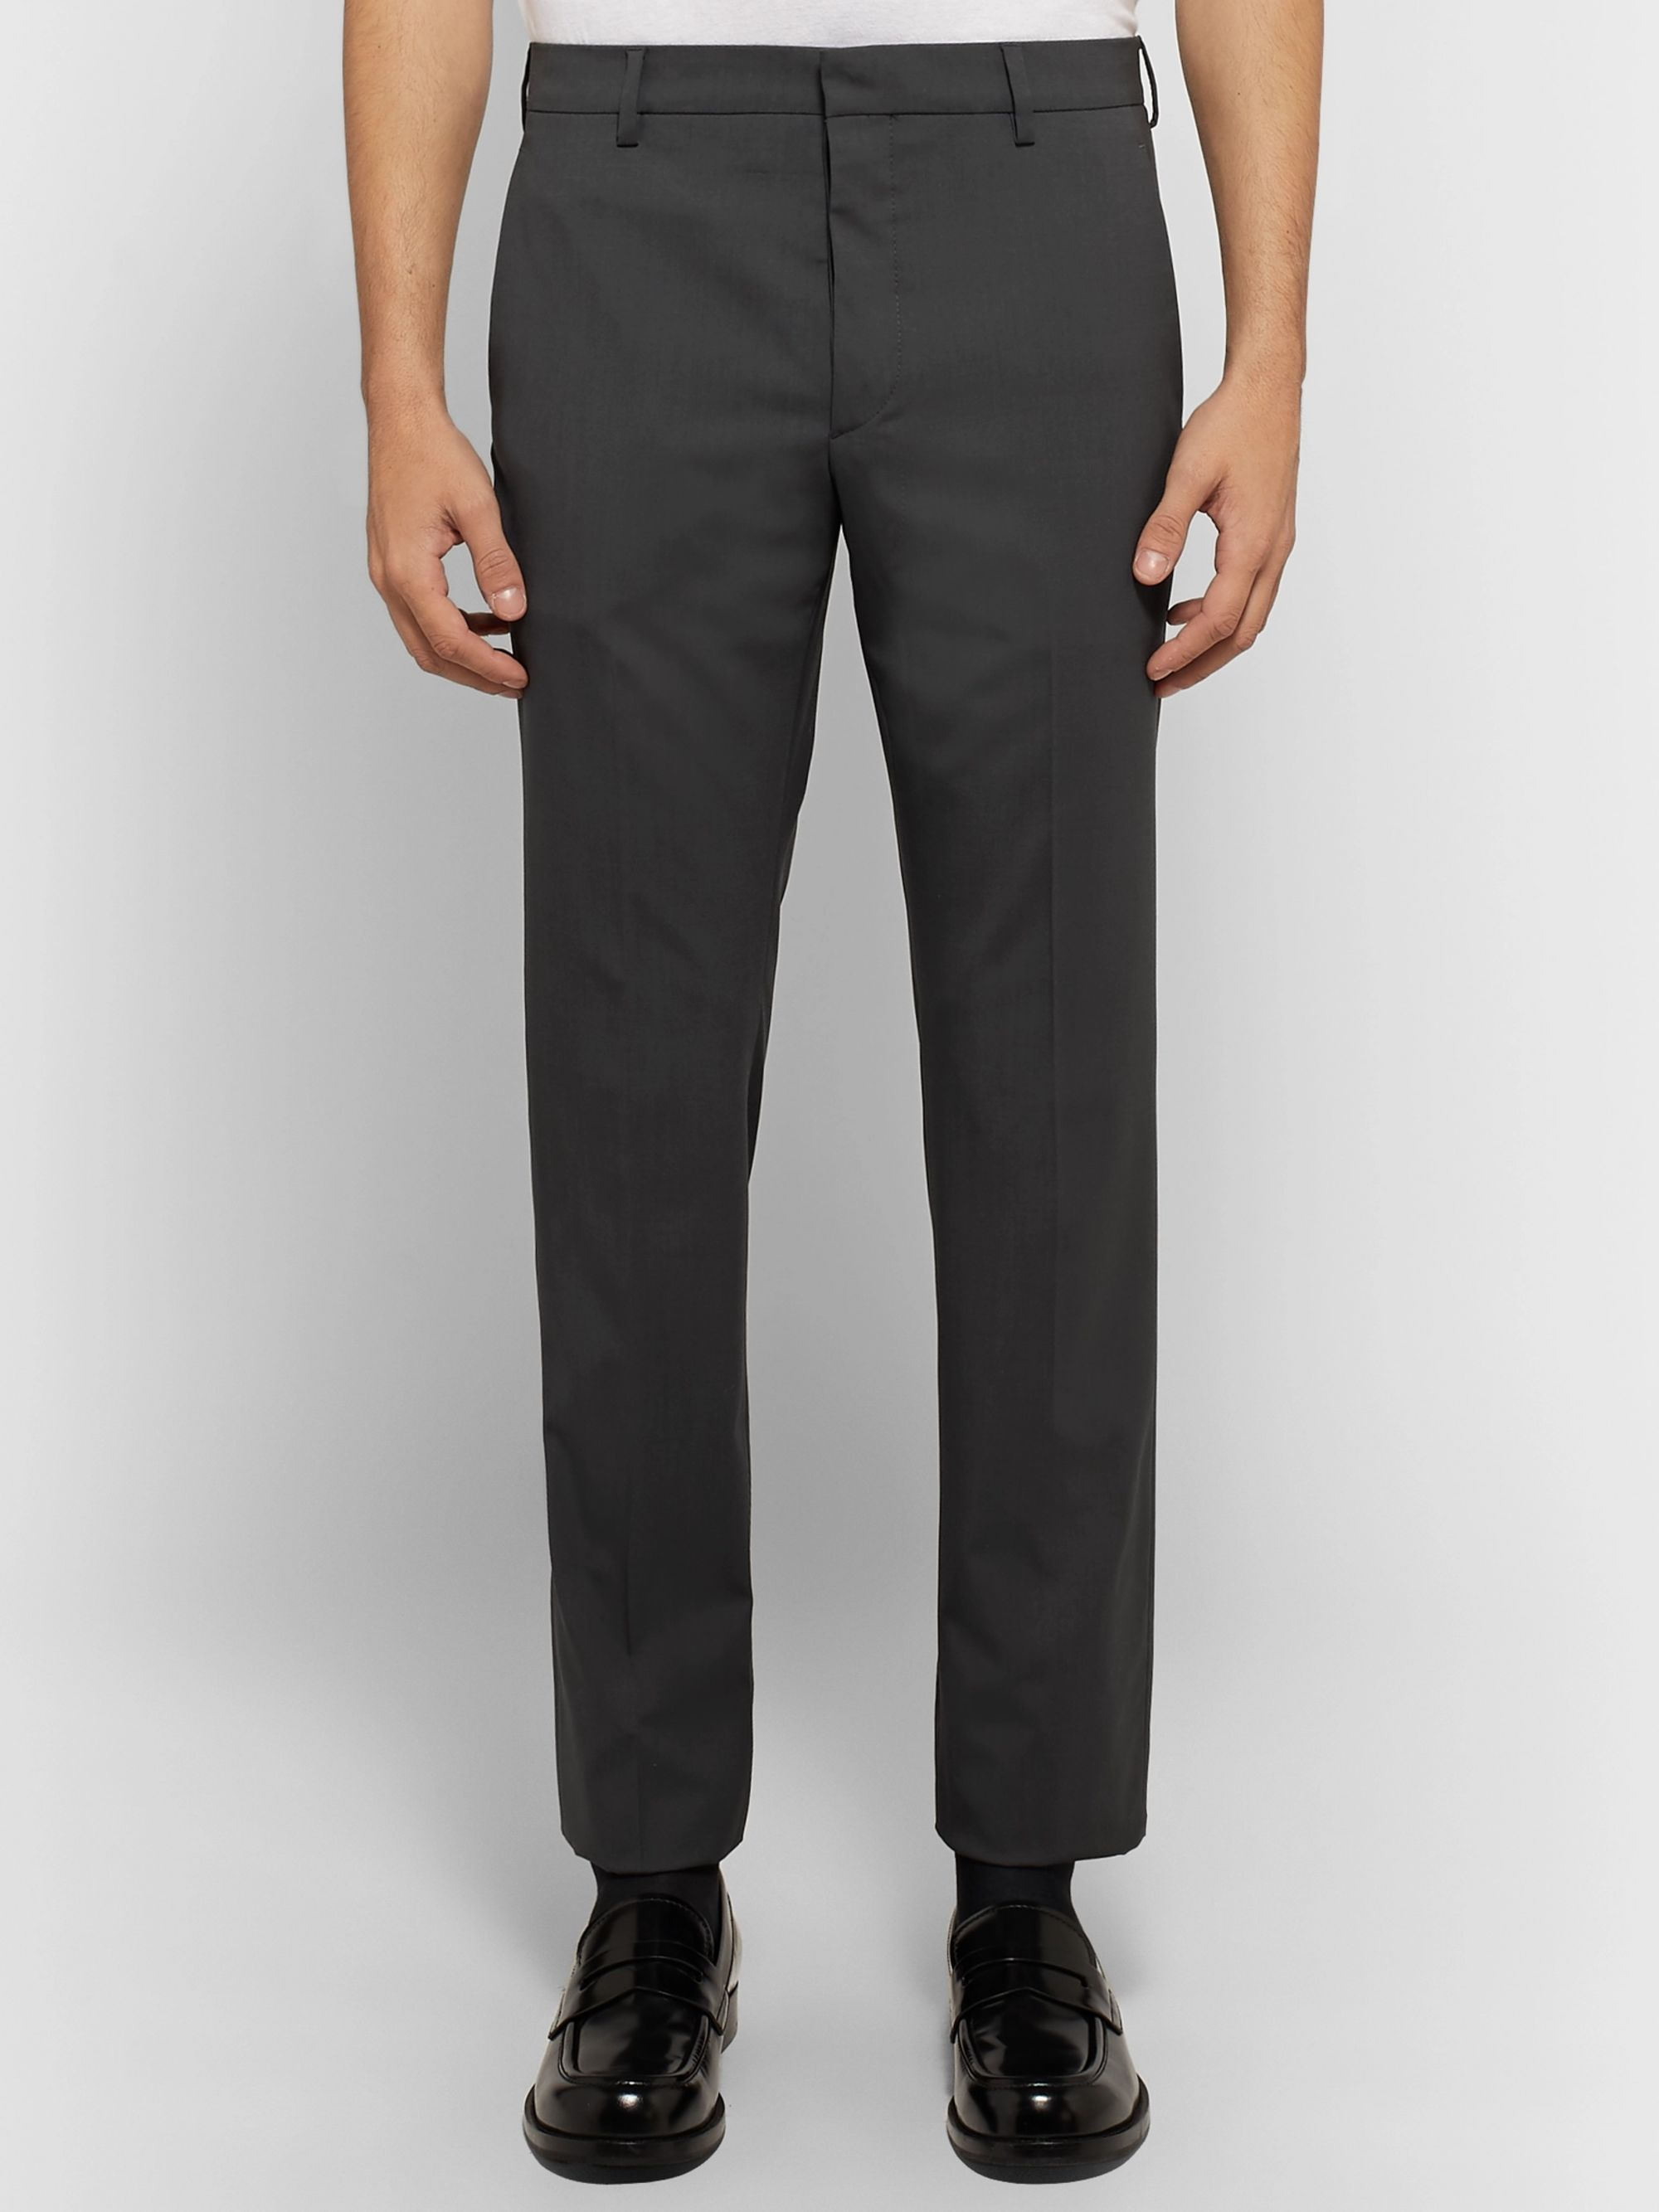 Prada Slim-Fit Stretch Virgin Wool-Blend Trousers